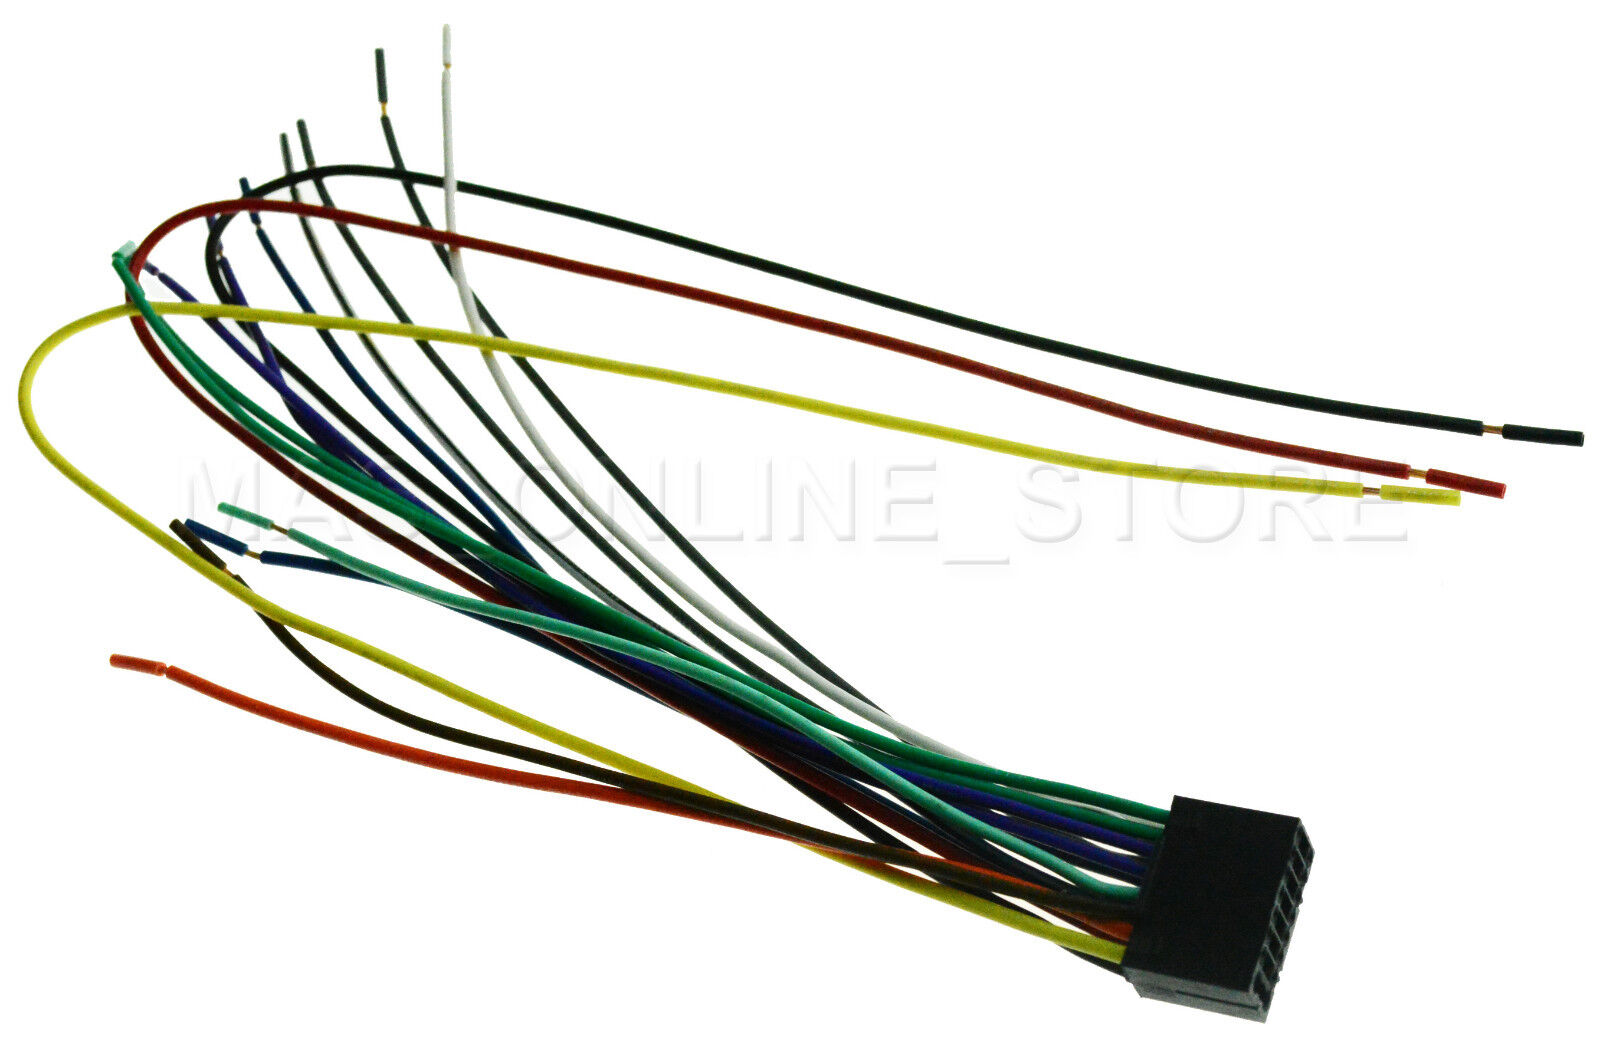 Kenwood Dnx570hd Wiring Harness Diagram Another Blog About Wire Management For Dnx 570hd Pay Today Ships Rh Ebay Com